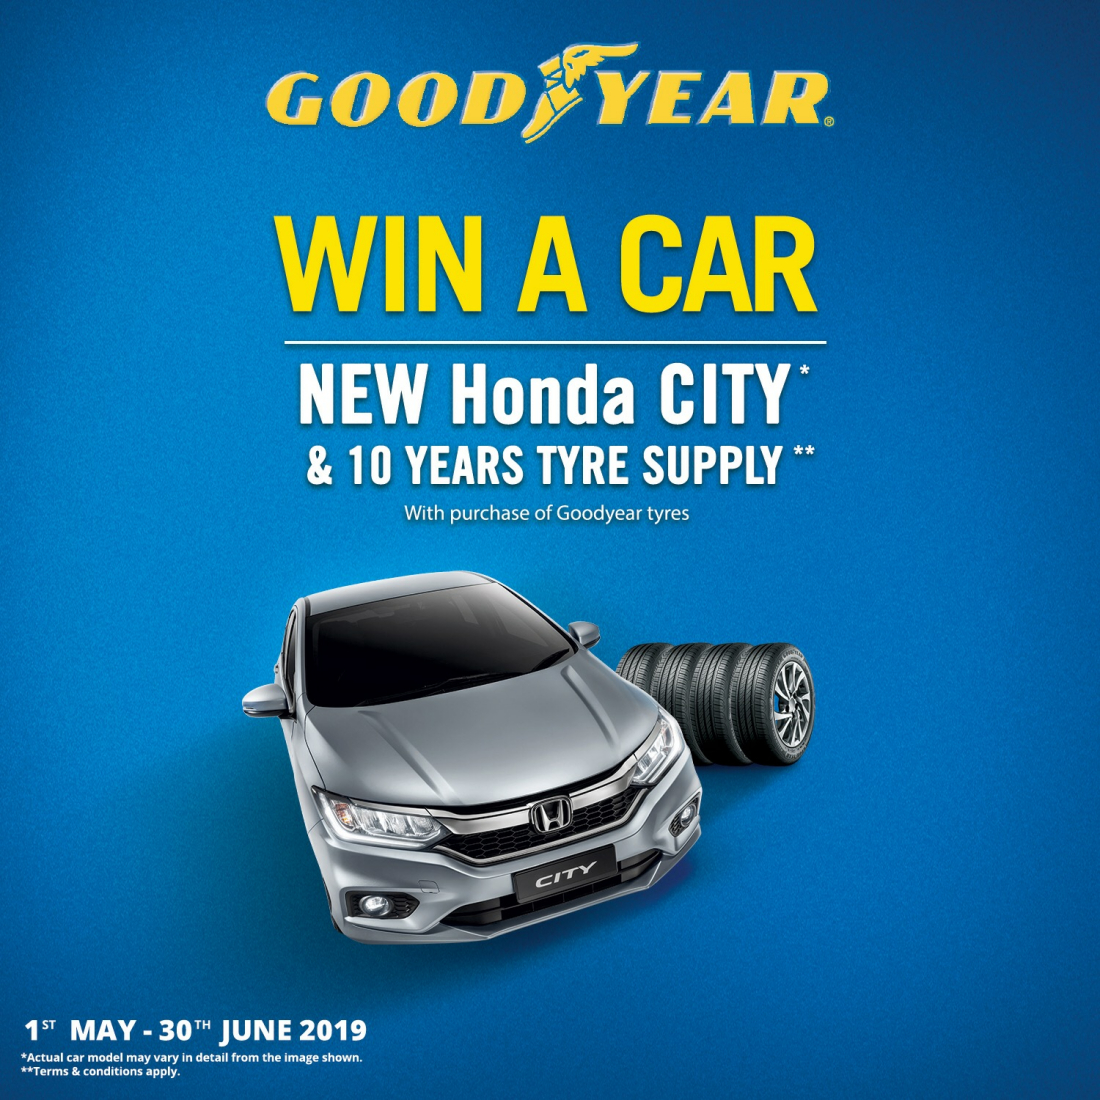 Goodyear Tyres Goodyear Malaysia Ramadhan And Hari Raya Promotion Offers Up A